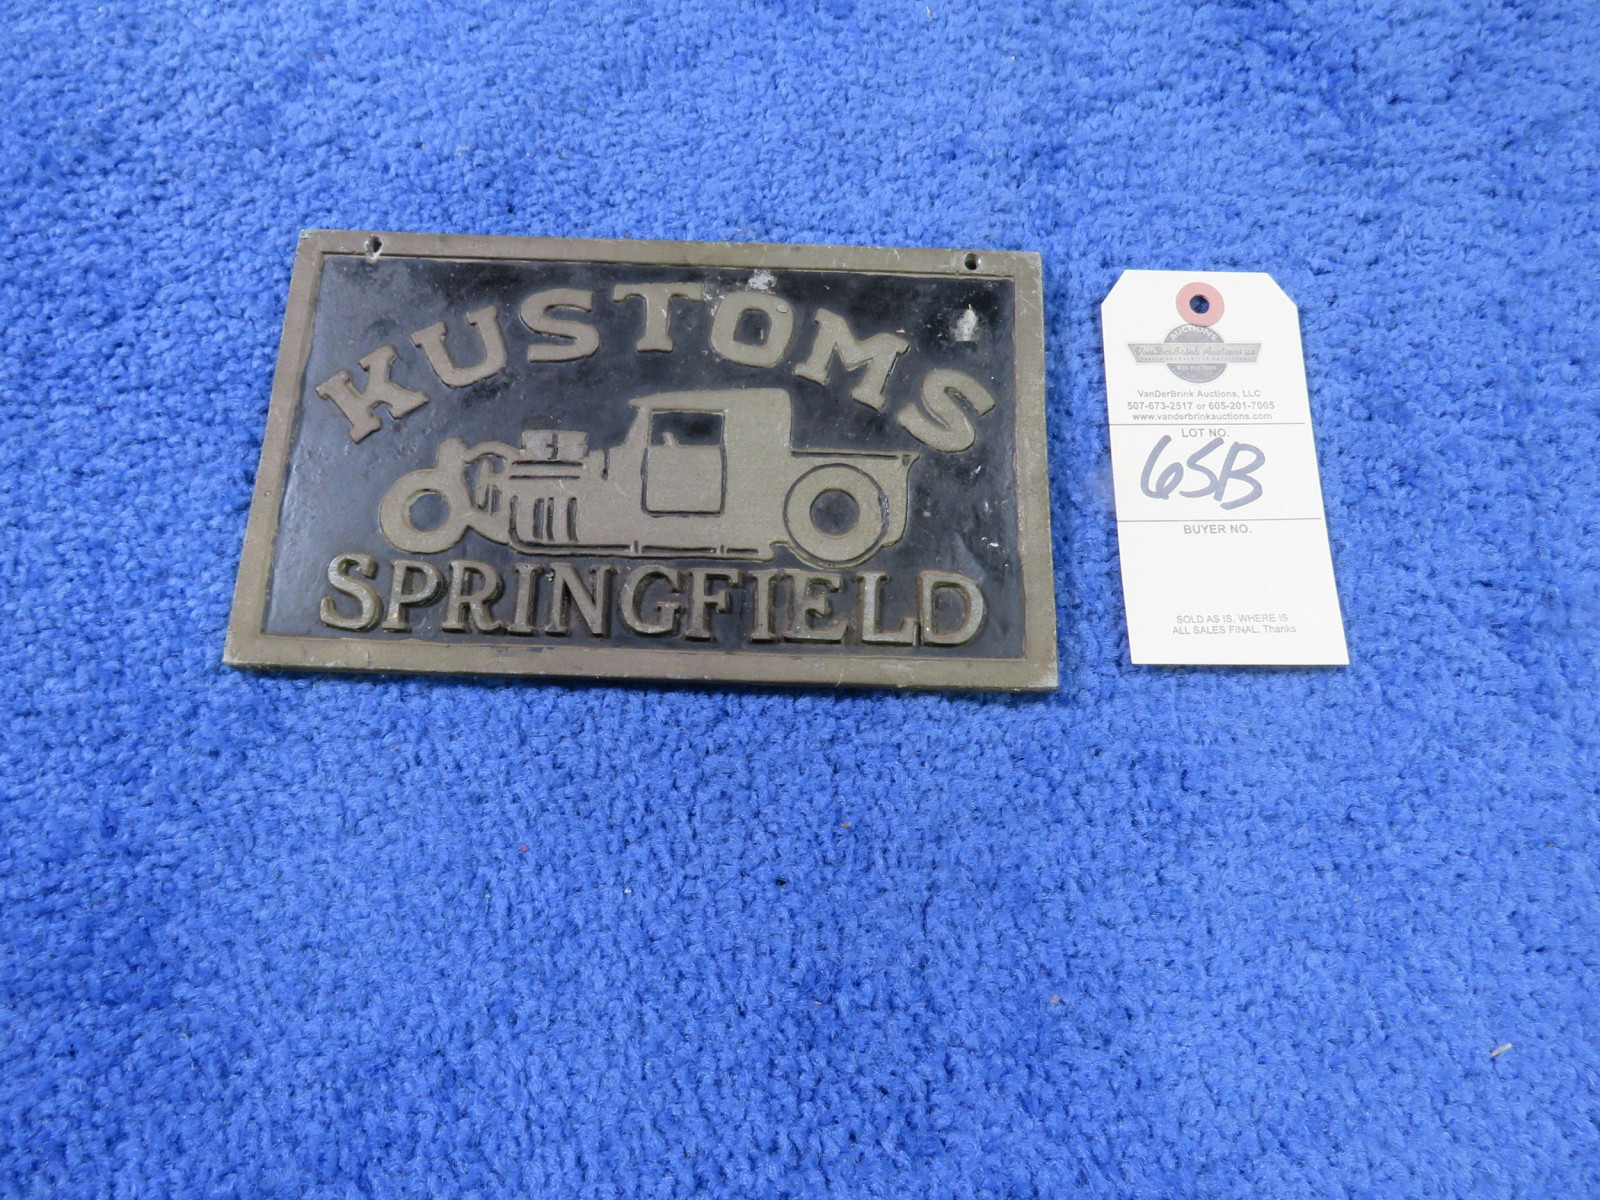 Kustoms Vintage Vehicle Club Plate from Springfield, MO- Pot Metal - Image 1